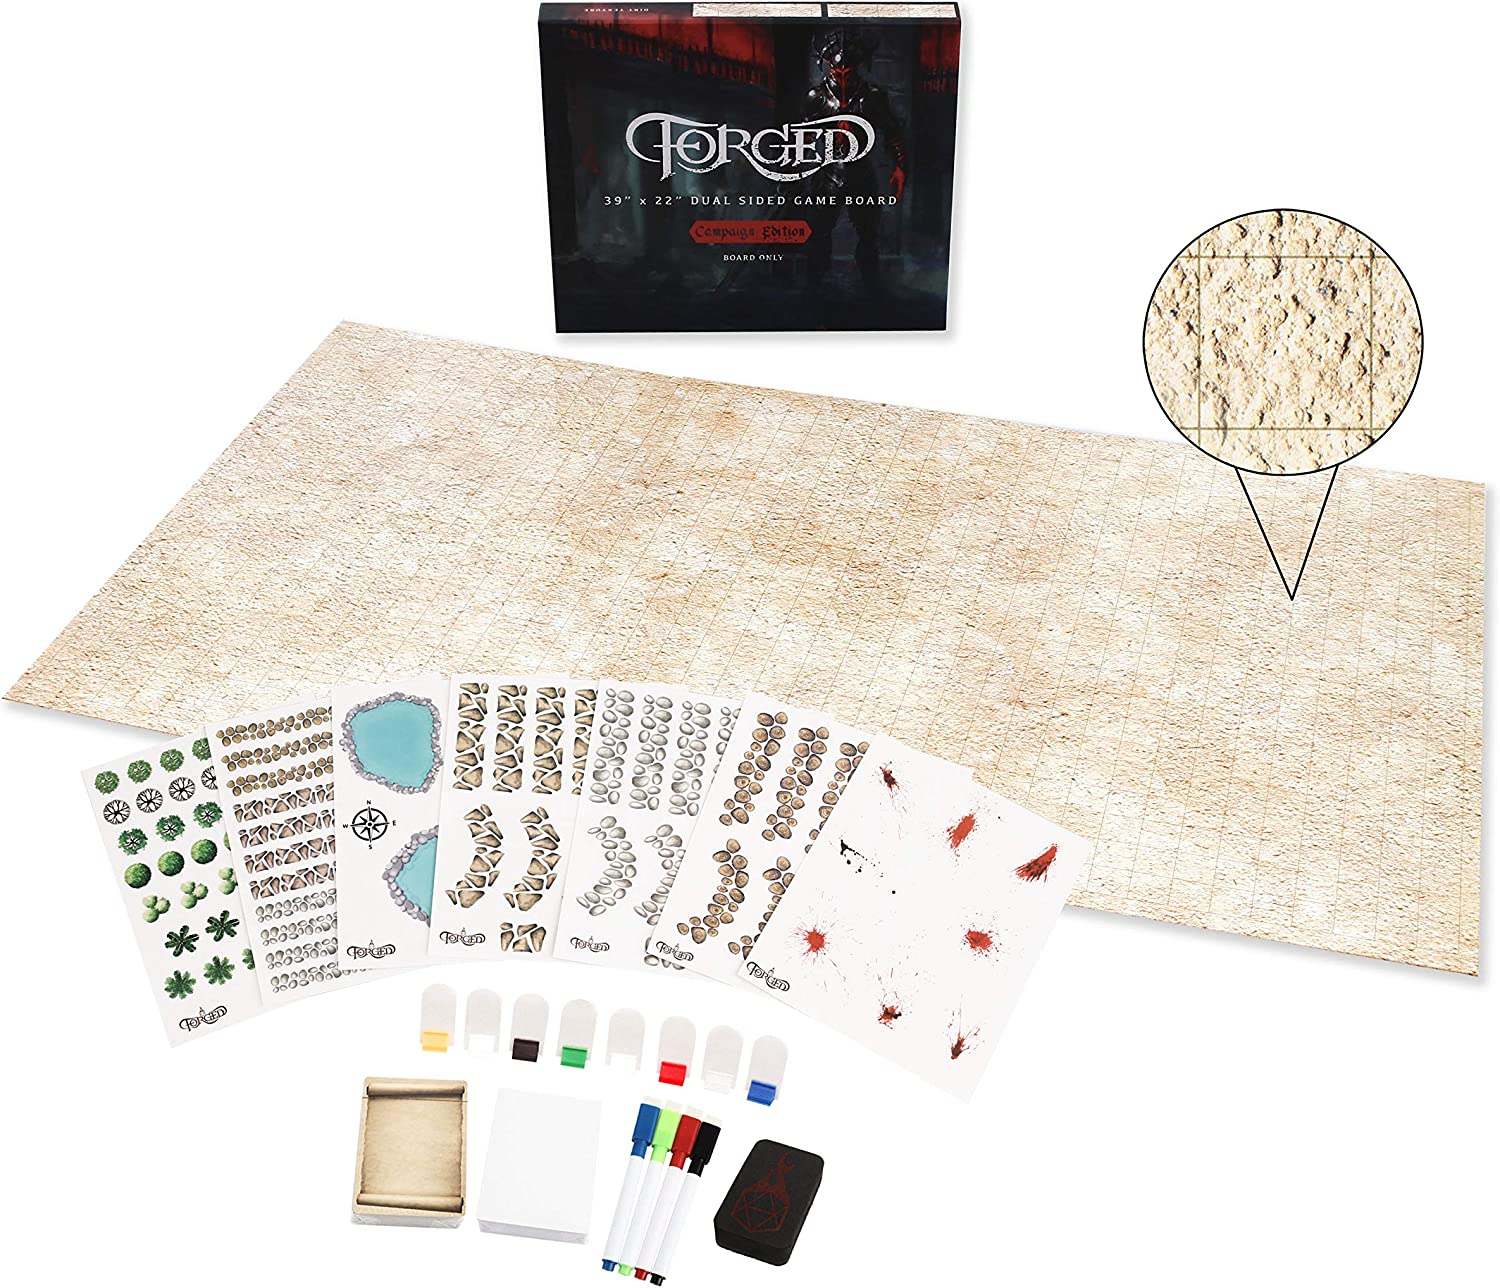 Forged Dice Co. Dry Clearance SALE Limited 2021 model time Erase Battle Board with Hex Grid Pat and Map